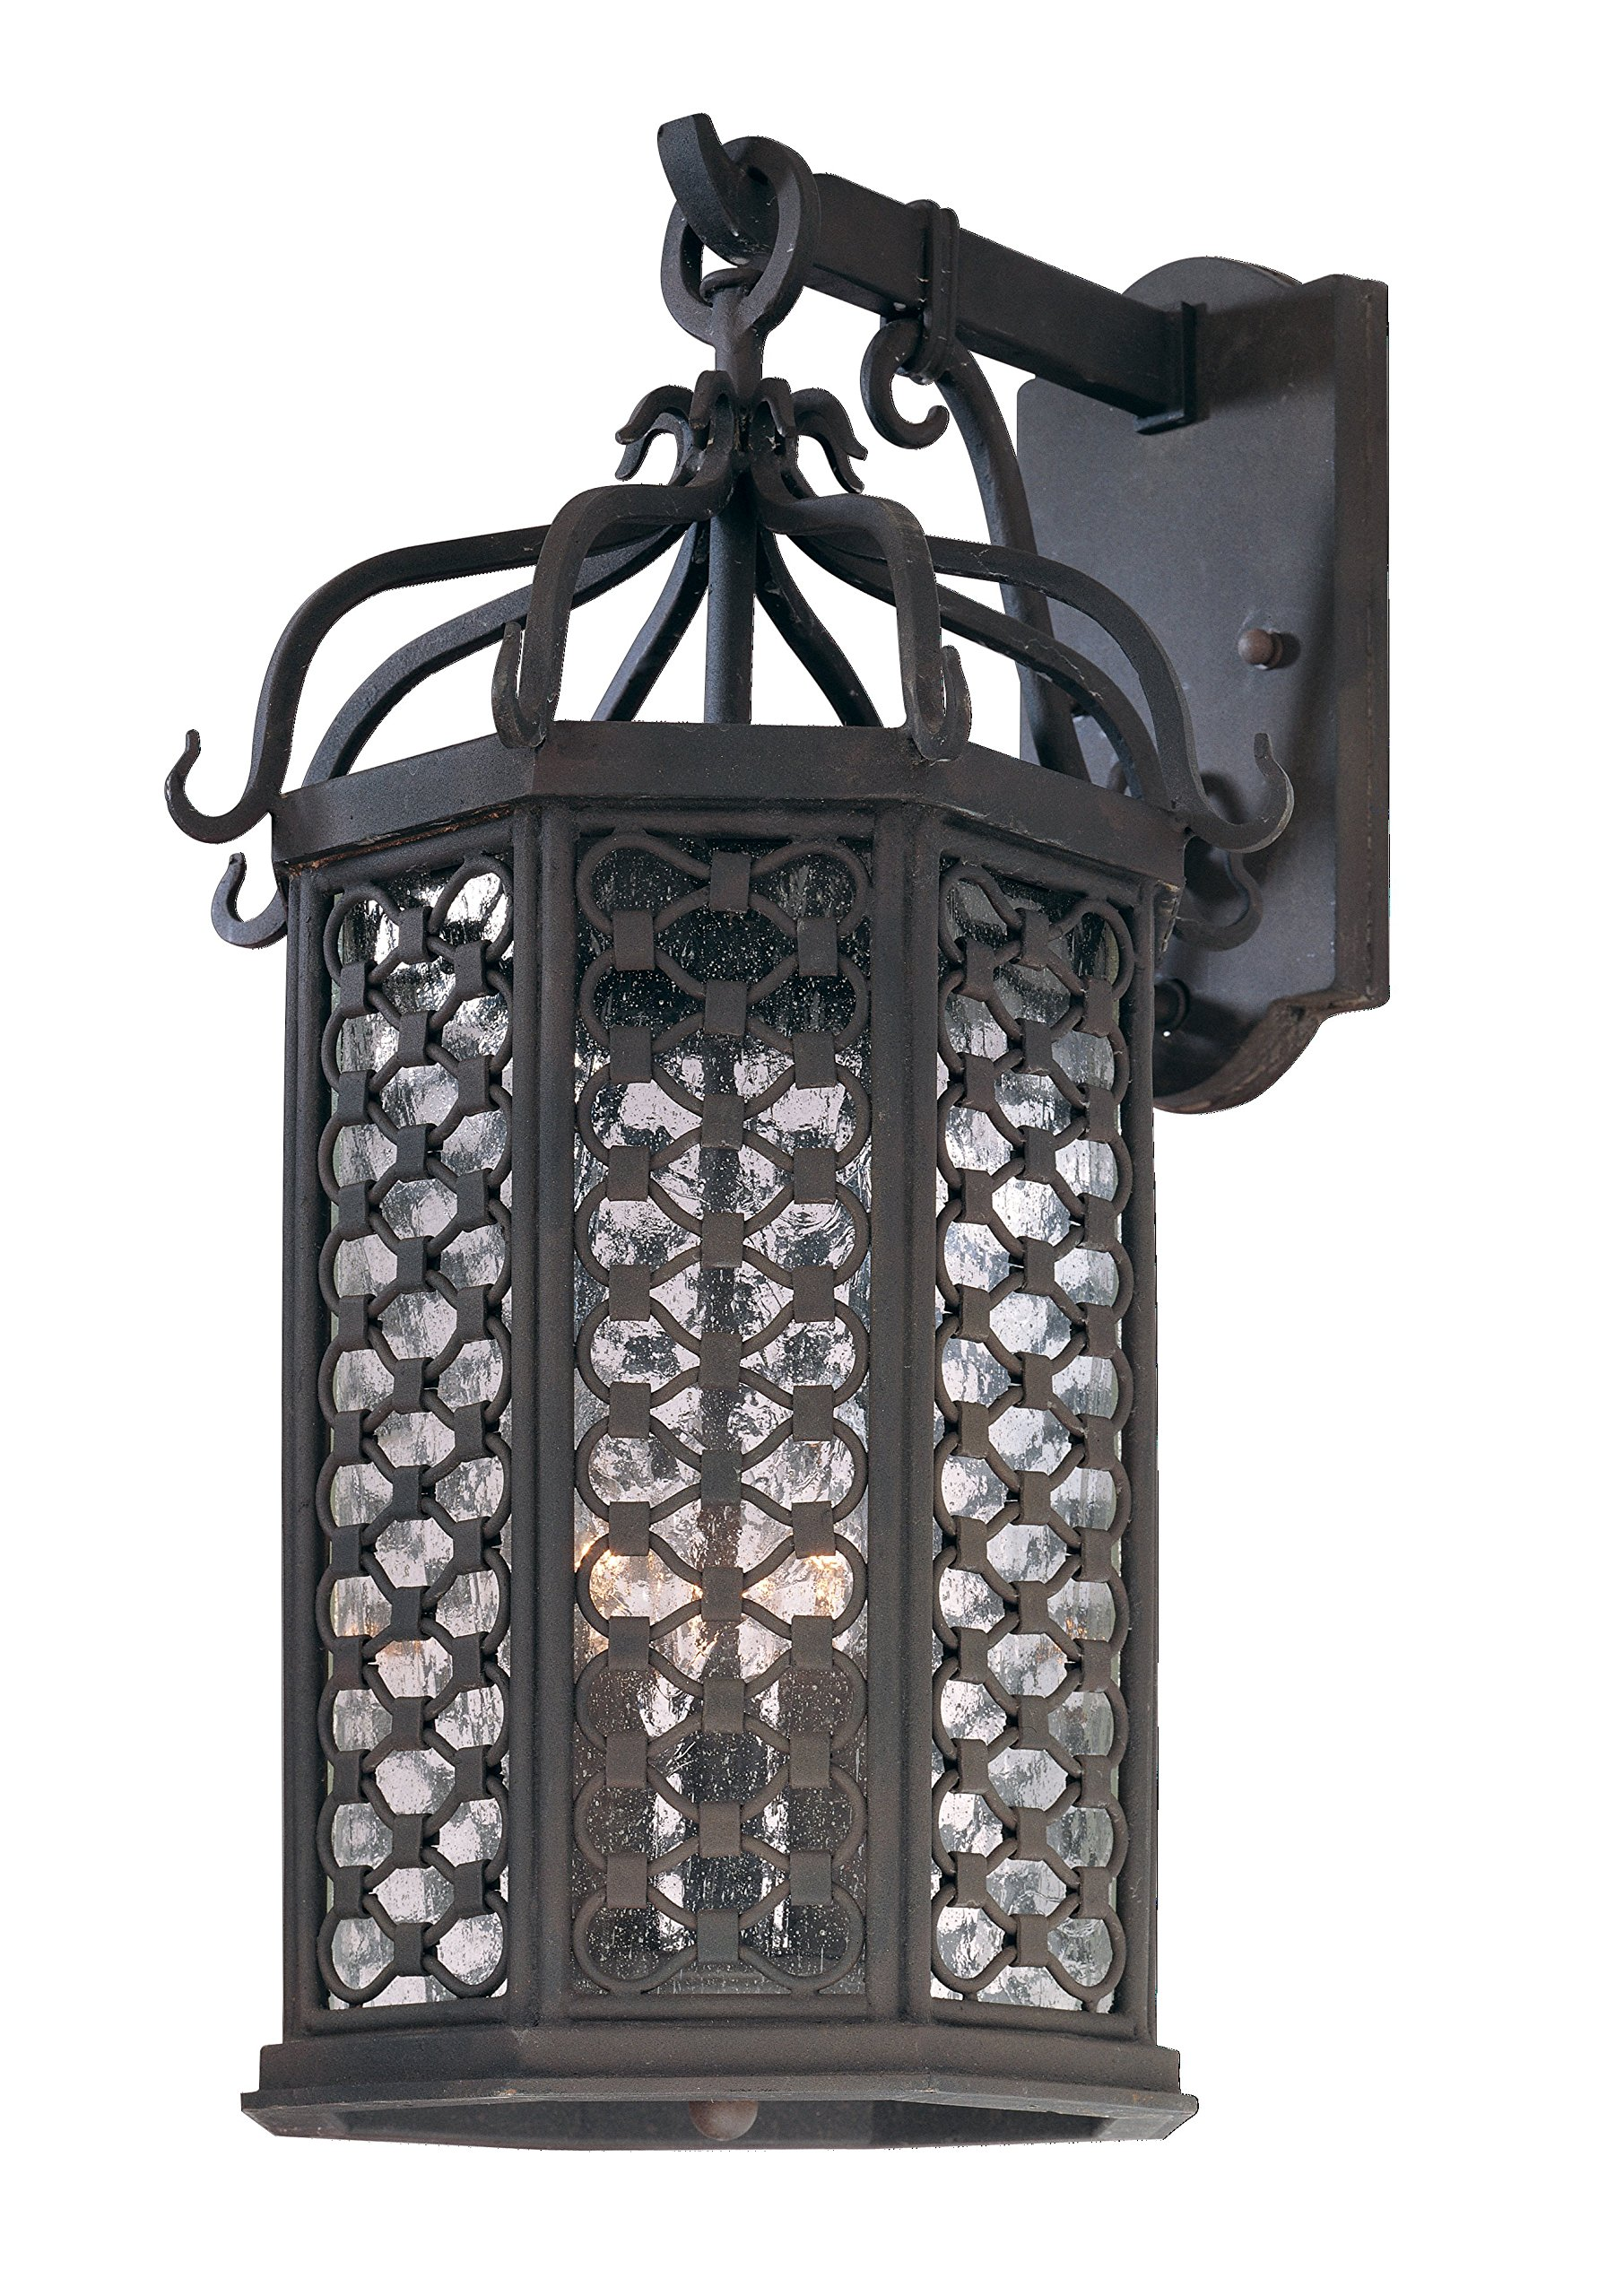 Troy Lighting Los Olivos 20.5''H 3-Light Outdoor Wall Lantern - Old Iron Finish with Clear Seeded Glass by Troy